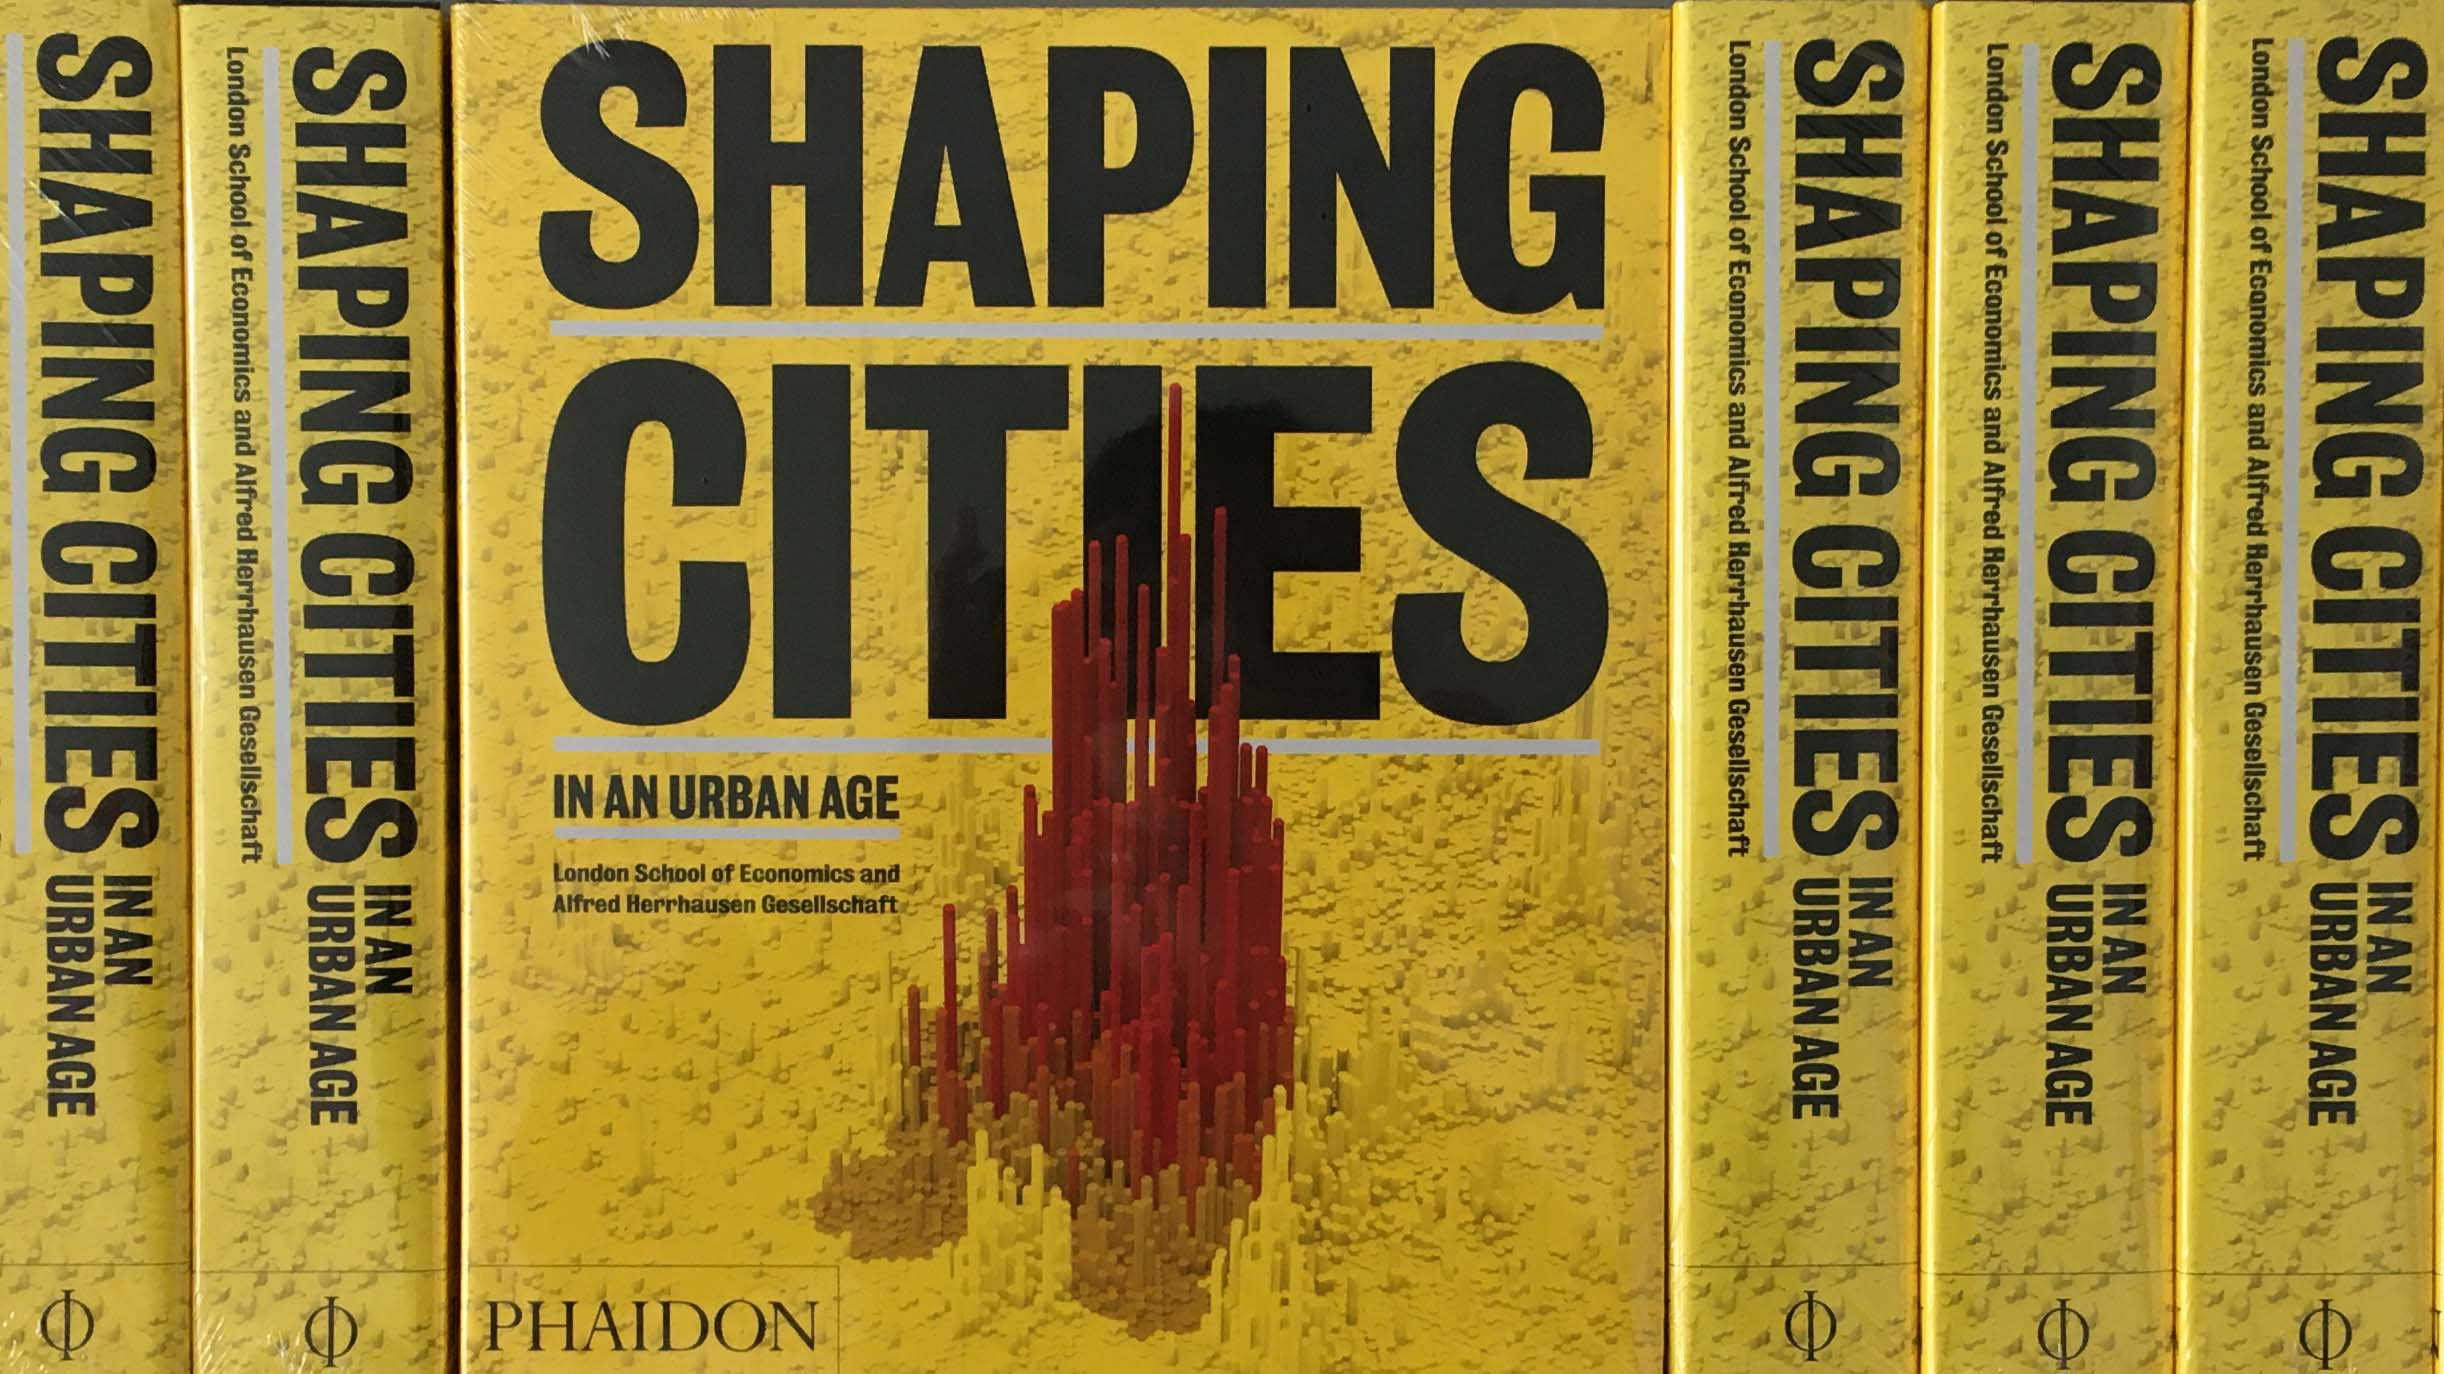 Shaping-cities-747x420